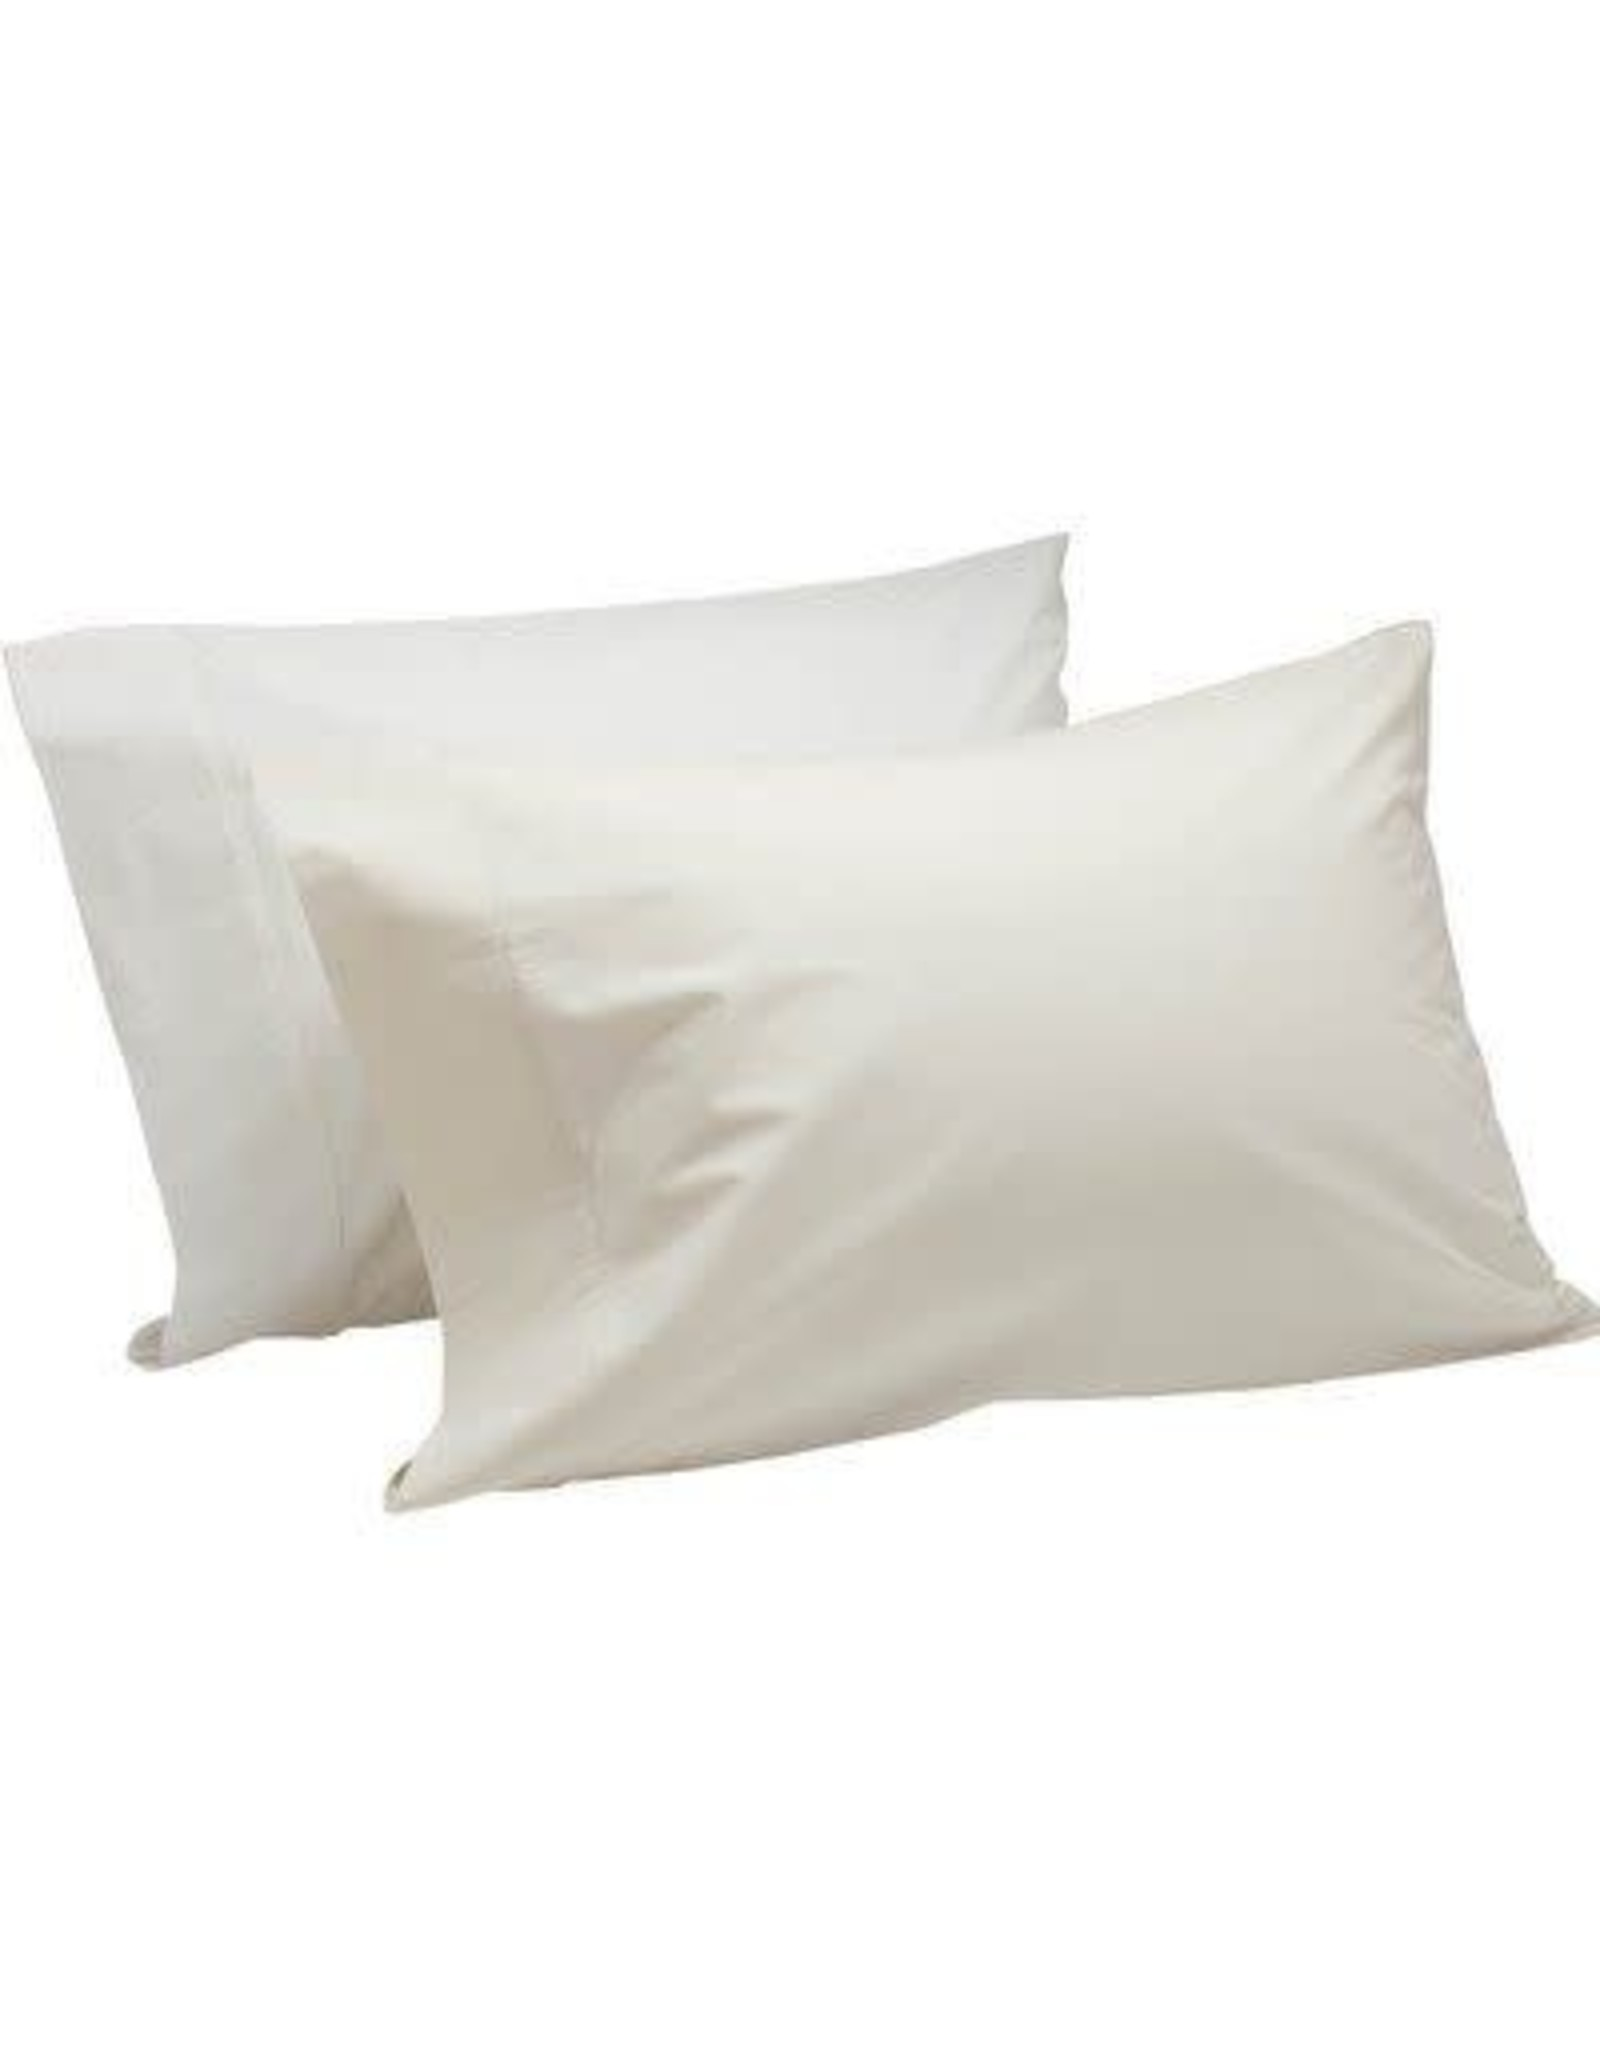 Pillowcases (pair) Percale